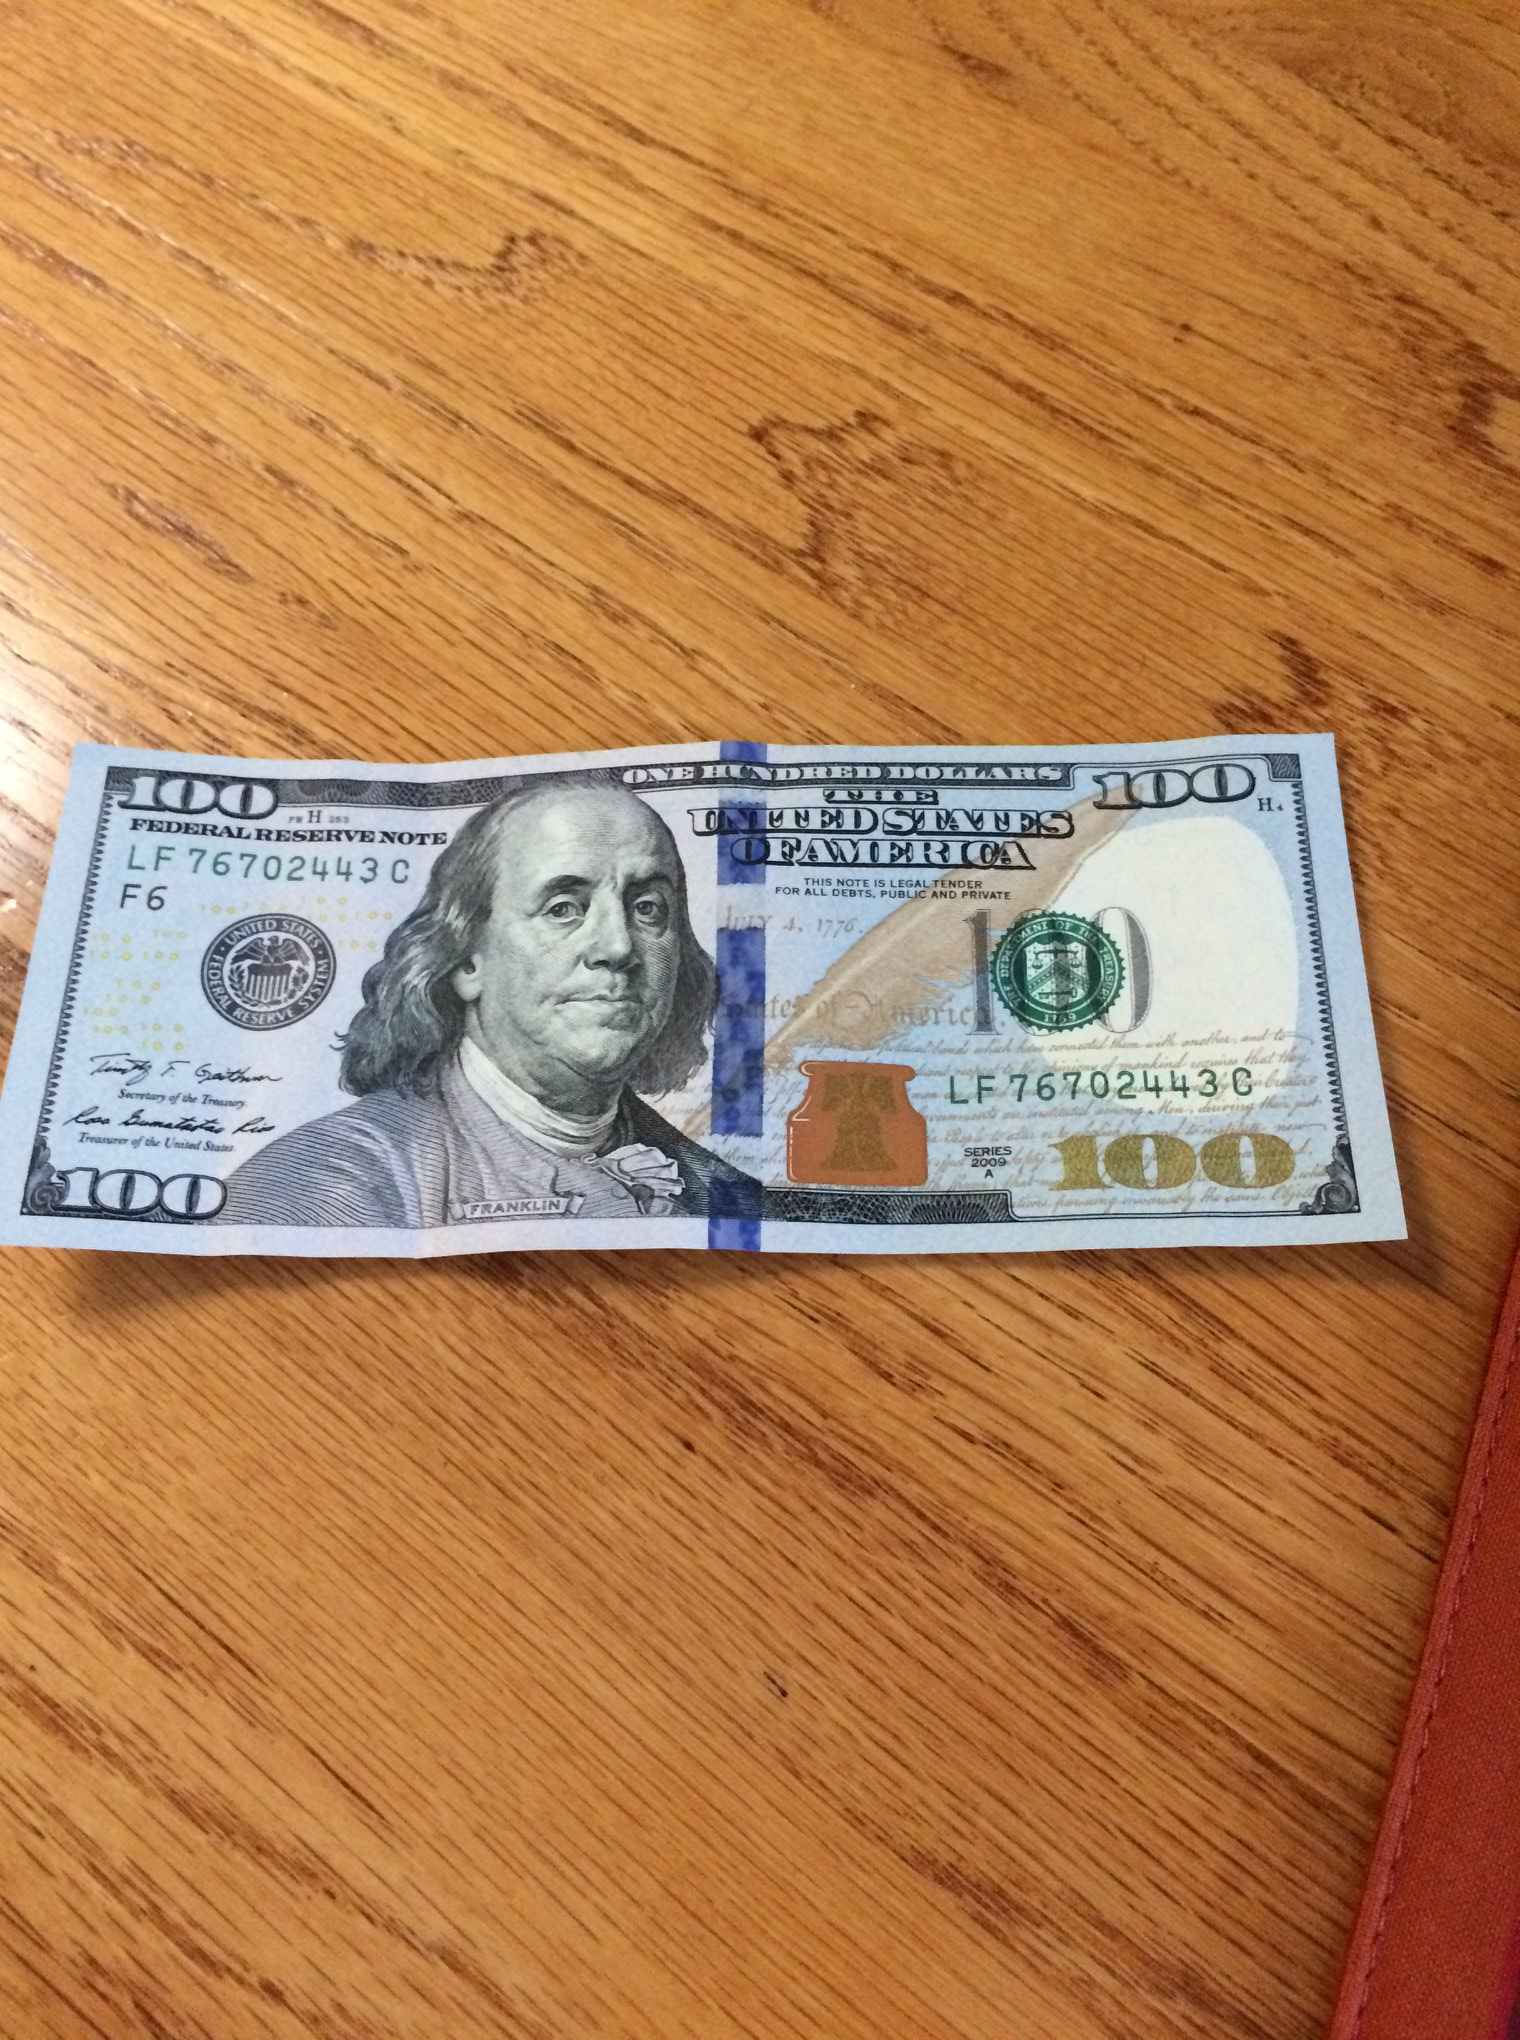 Photograph of a crisp 100 dollar bill